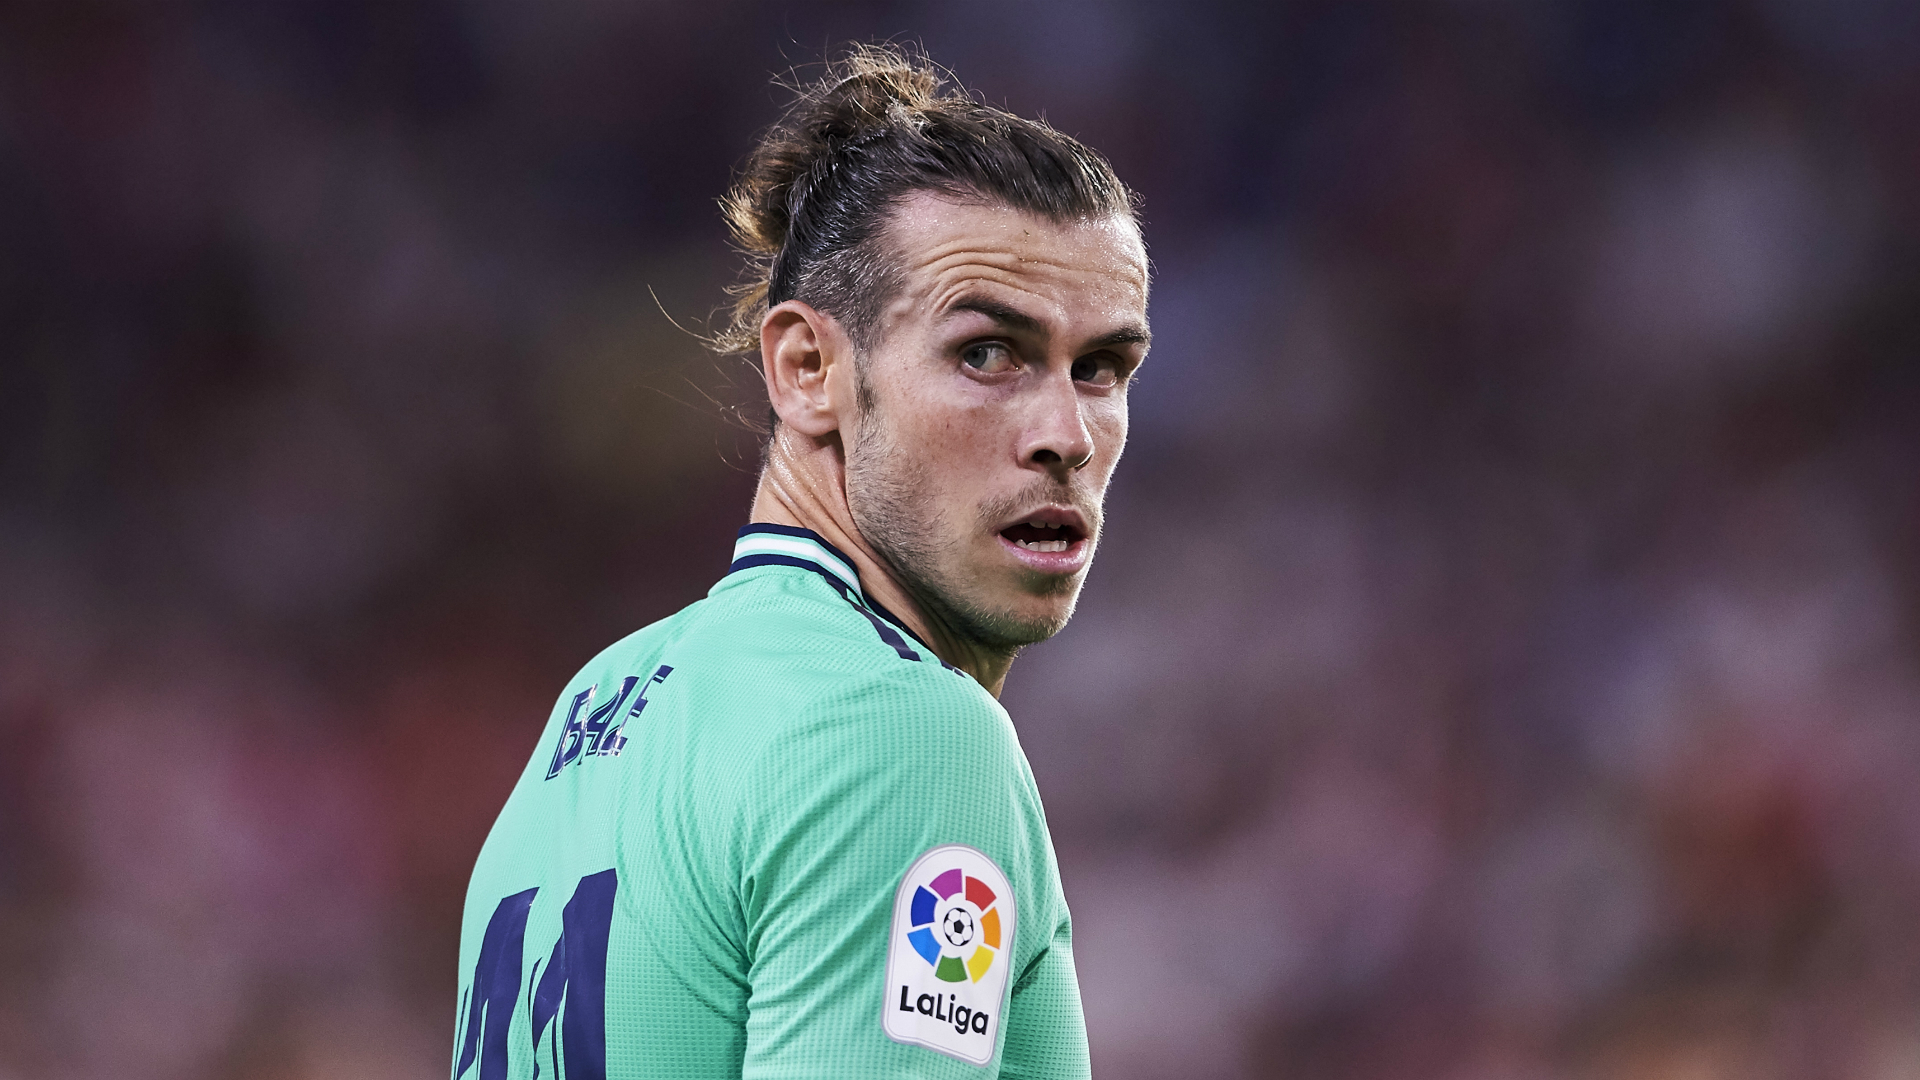 Zidane: I don't have to convince Bale to stay at Real Madrid